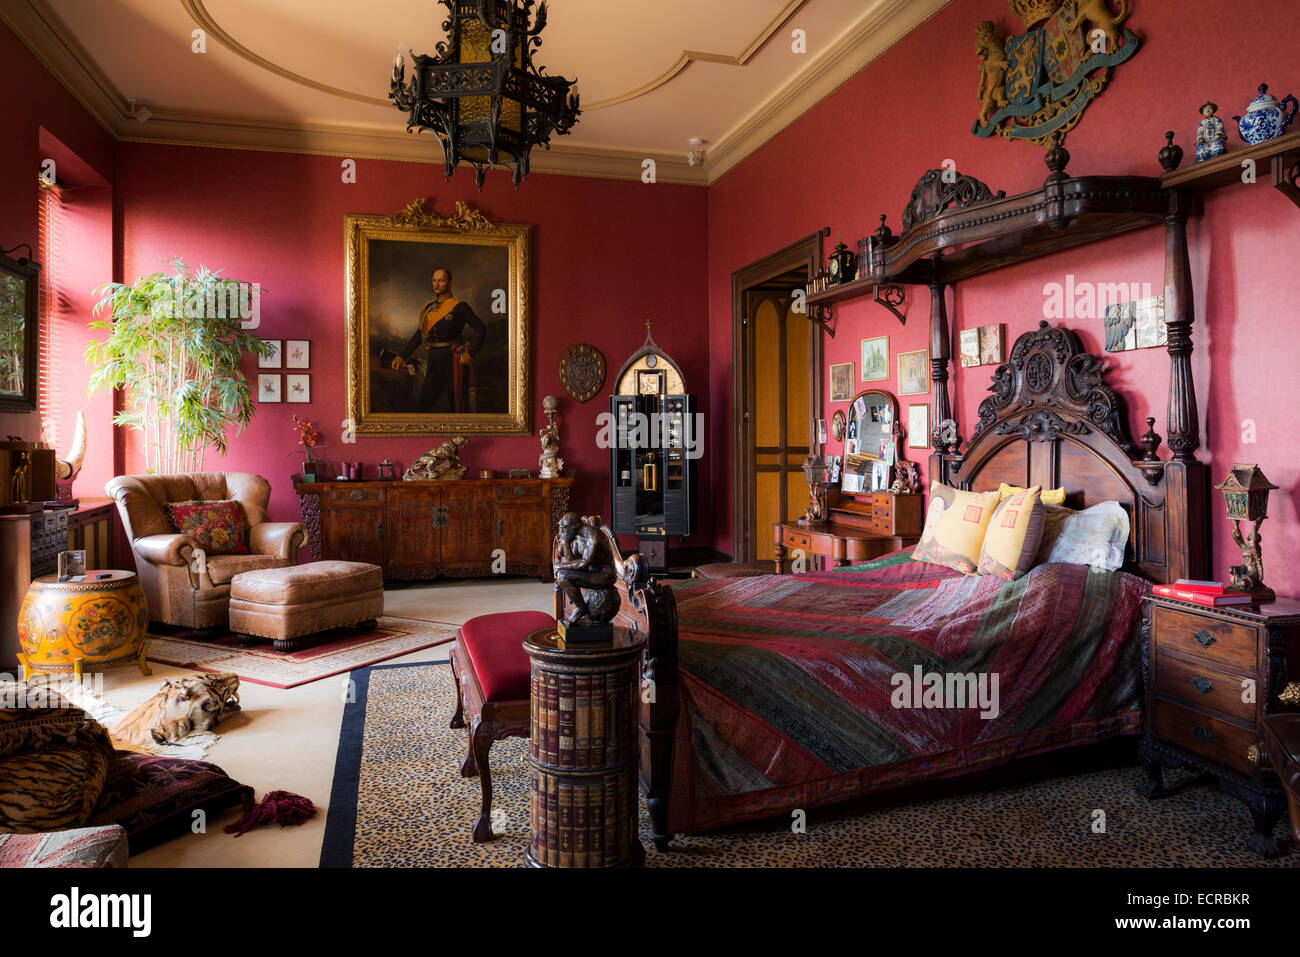 Ornate carved bed with coronet in large red bedroom with leopard ...